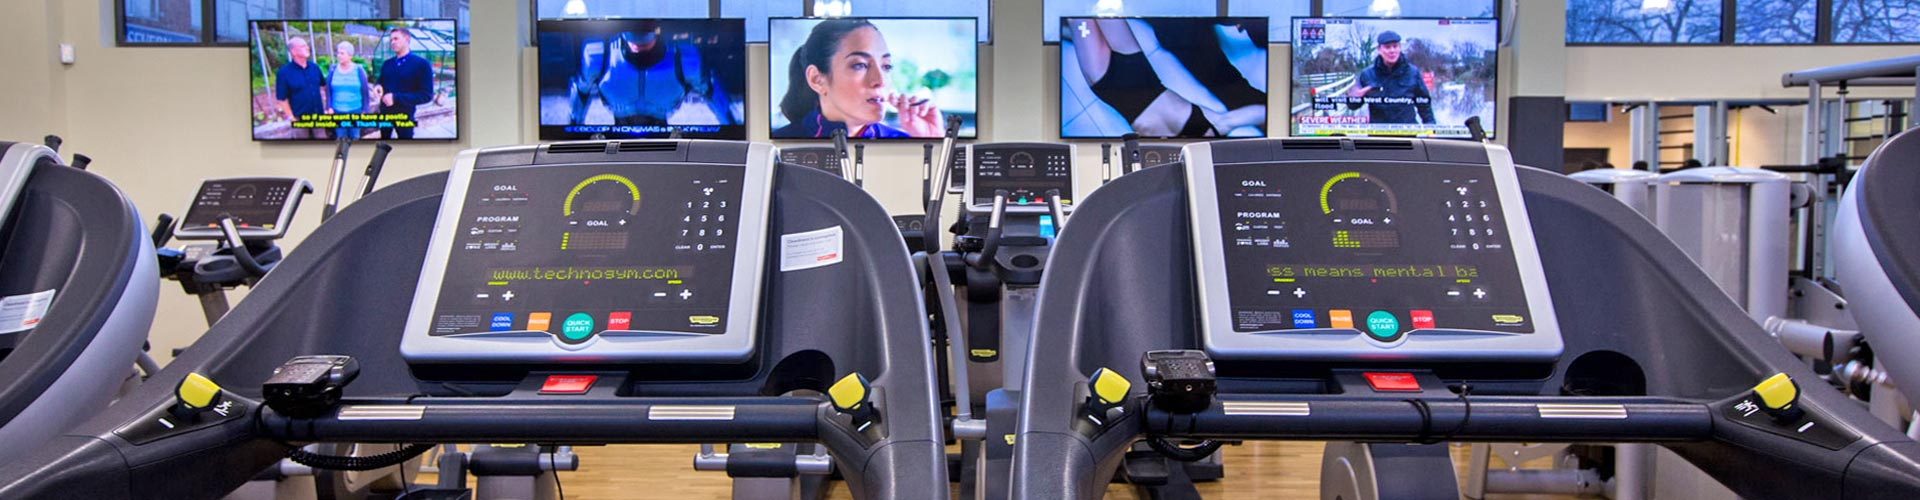 wireless cardio systems from Avactiv Ltd